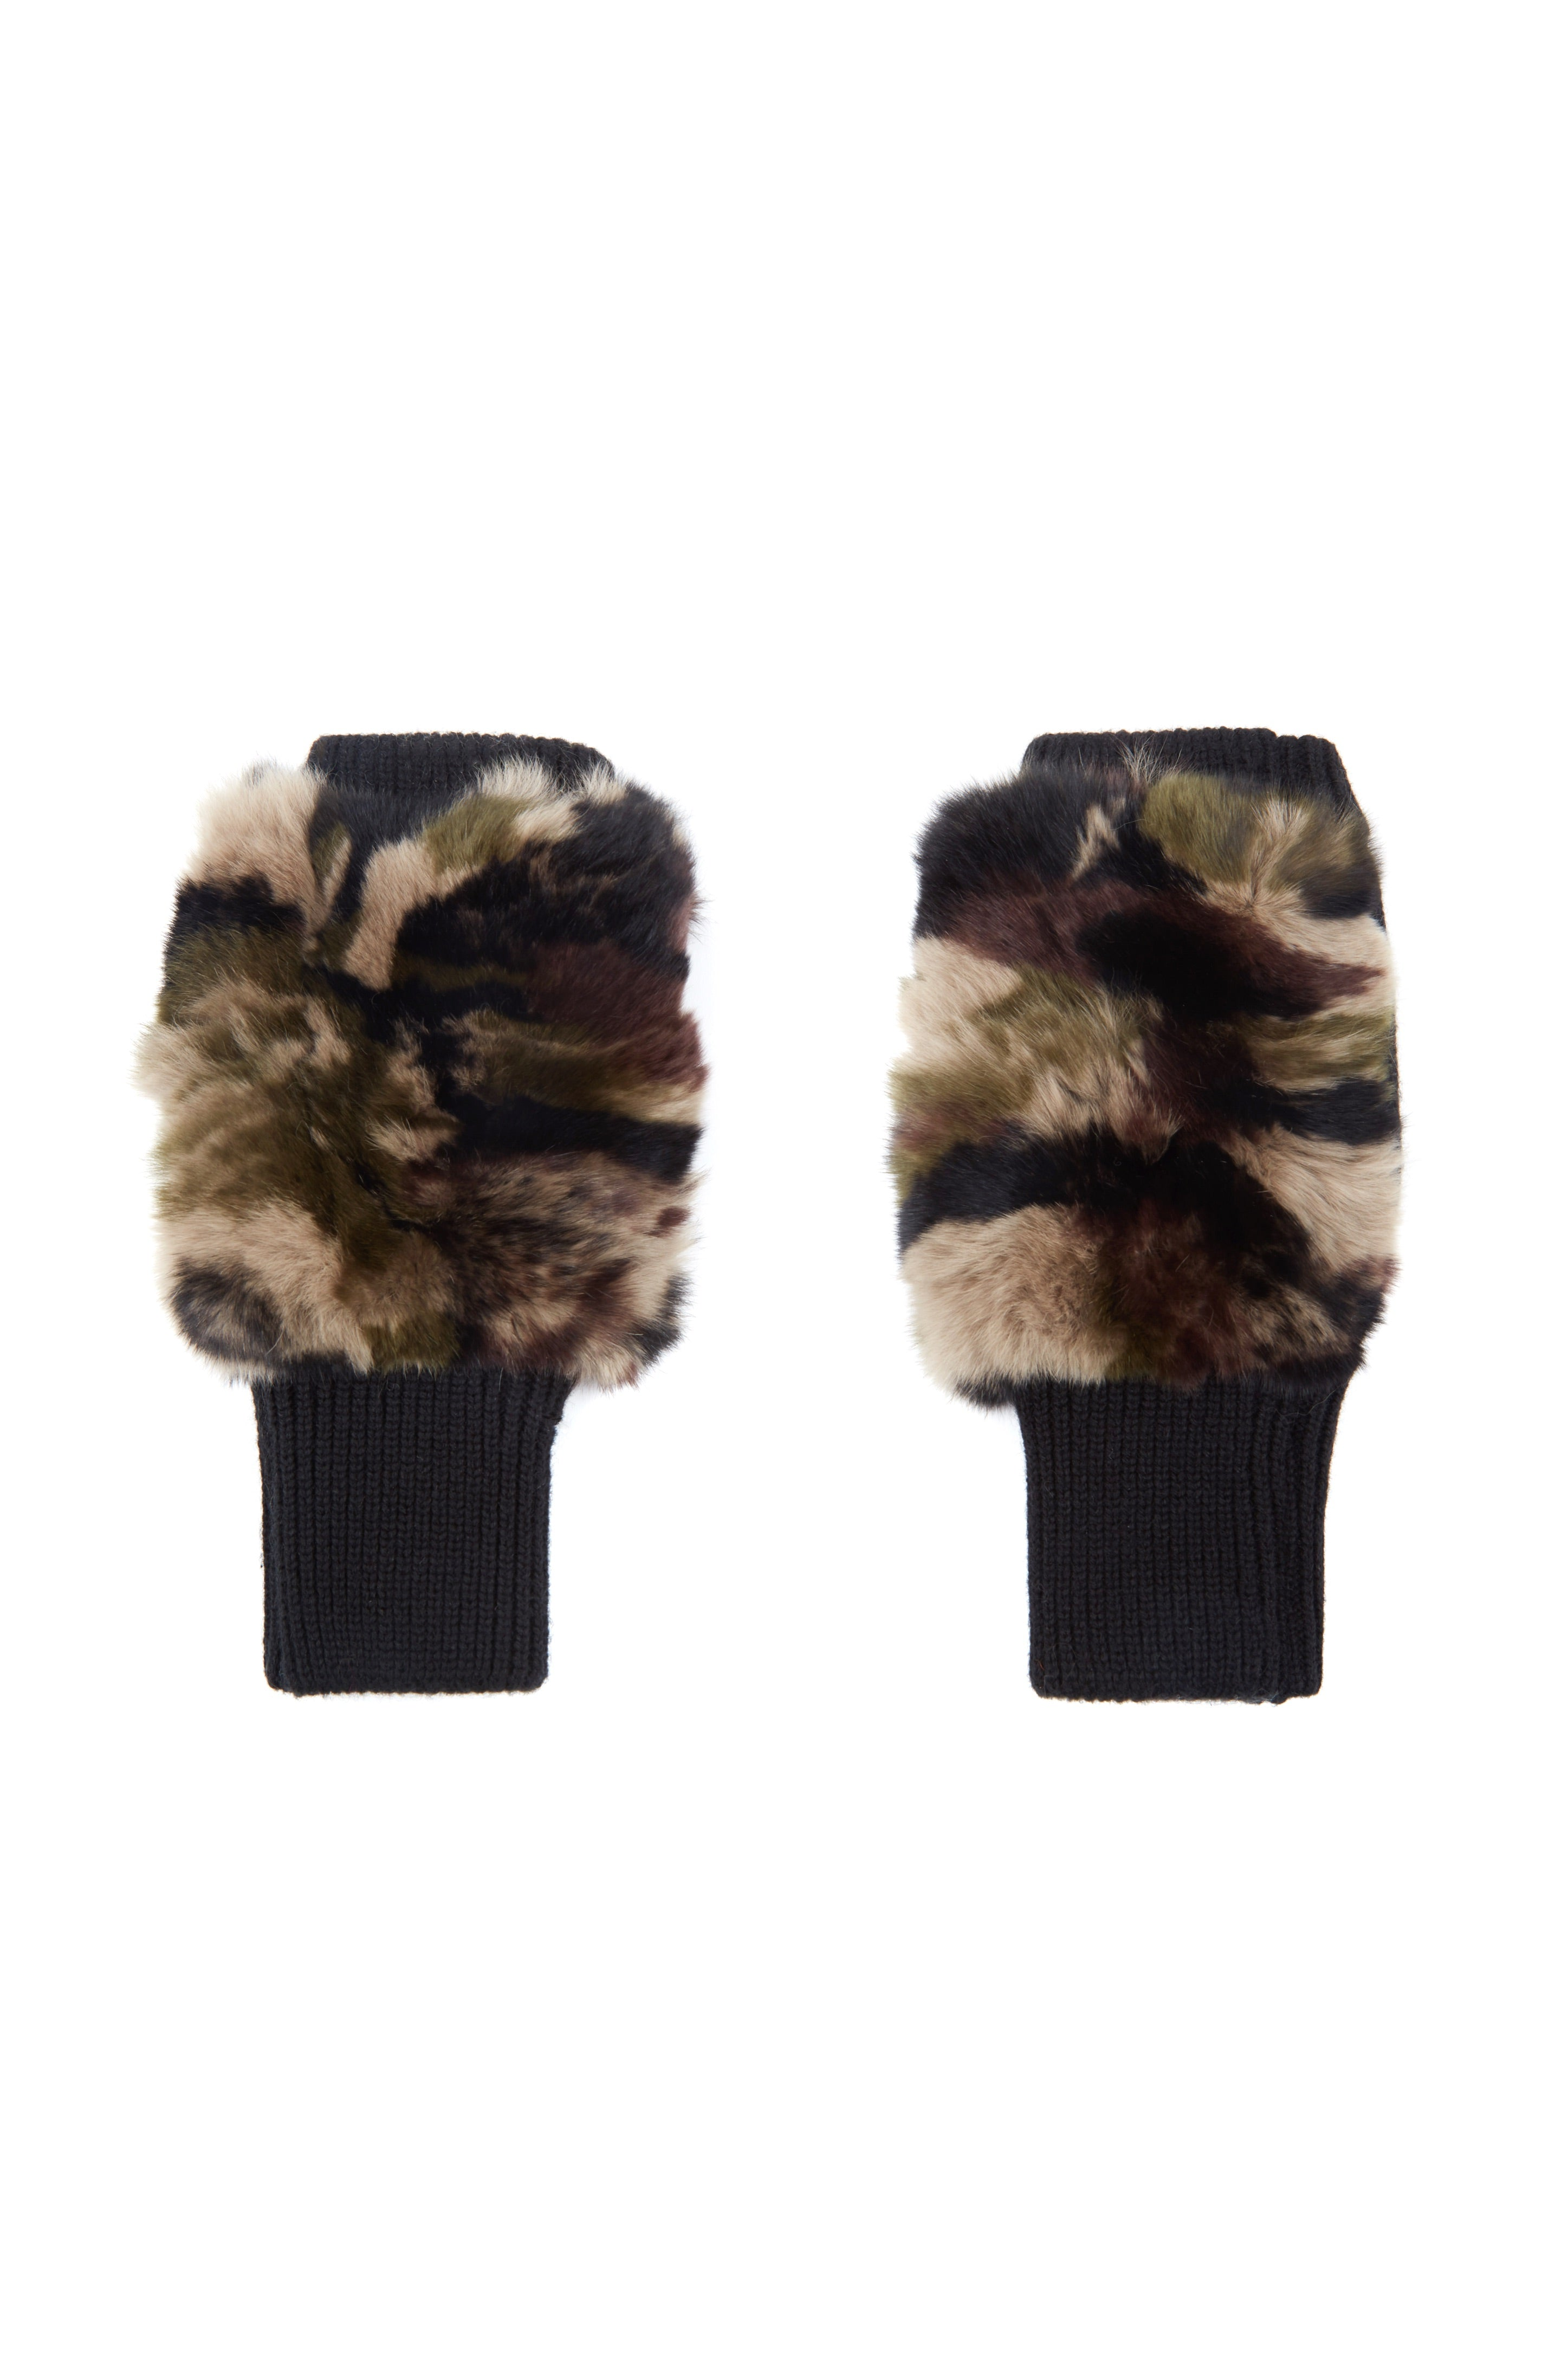 The Canal Cowl + Mitten Gift Set - Camo